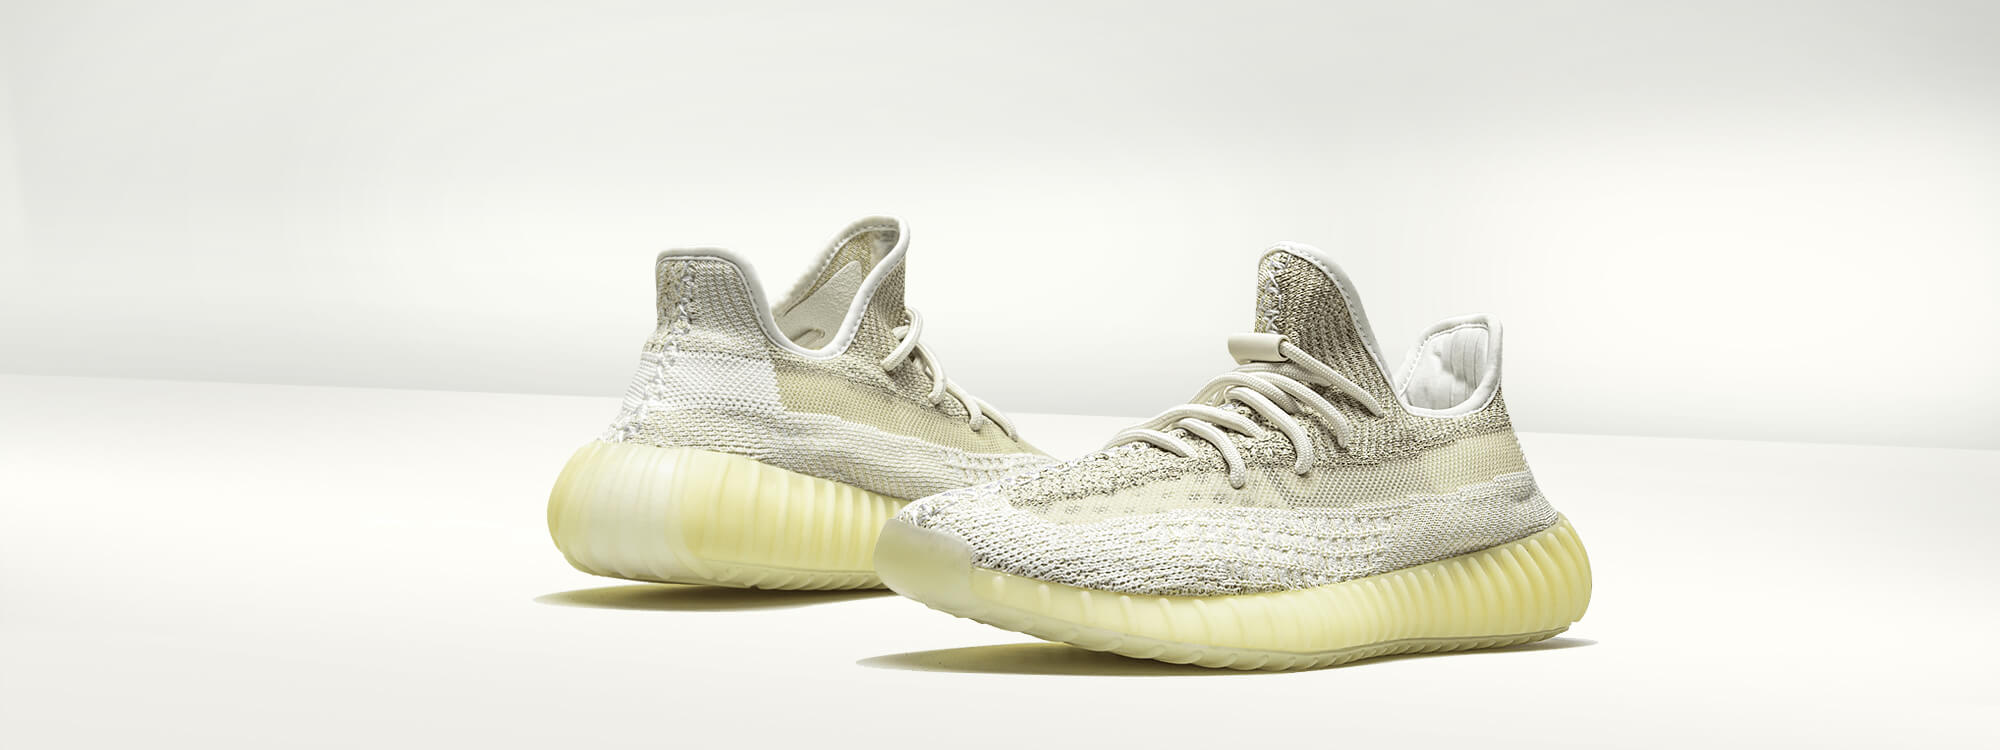 For sale the best Adidas Yeezy Boost 350 V2 Natural